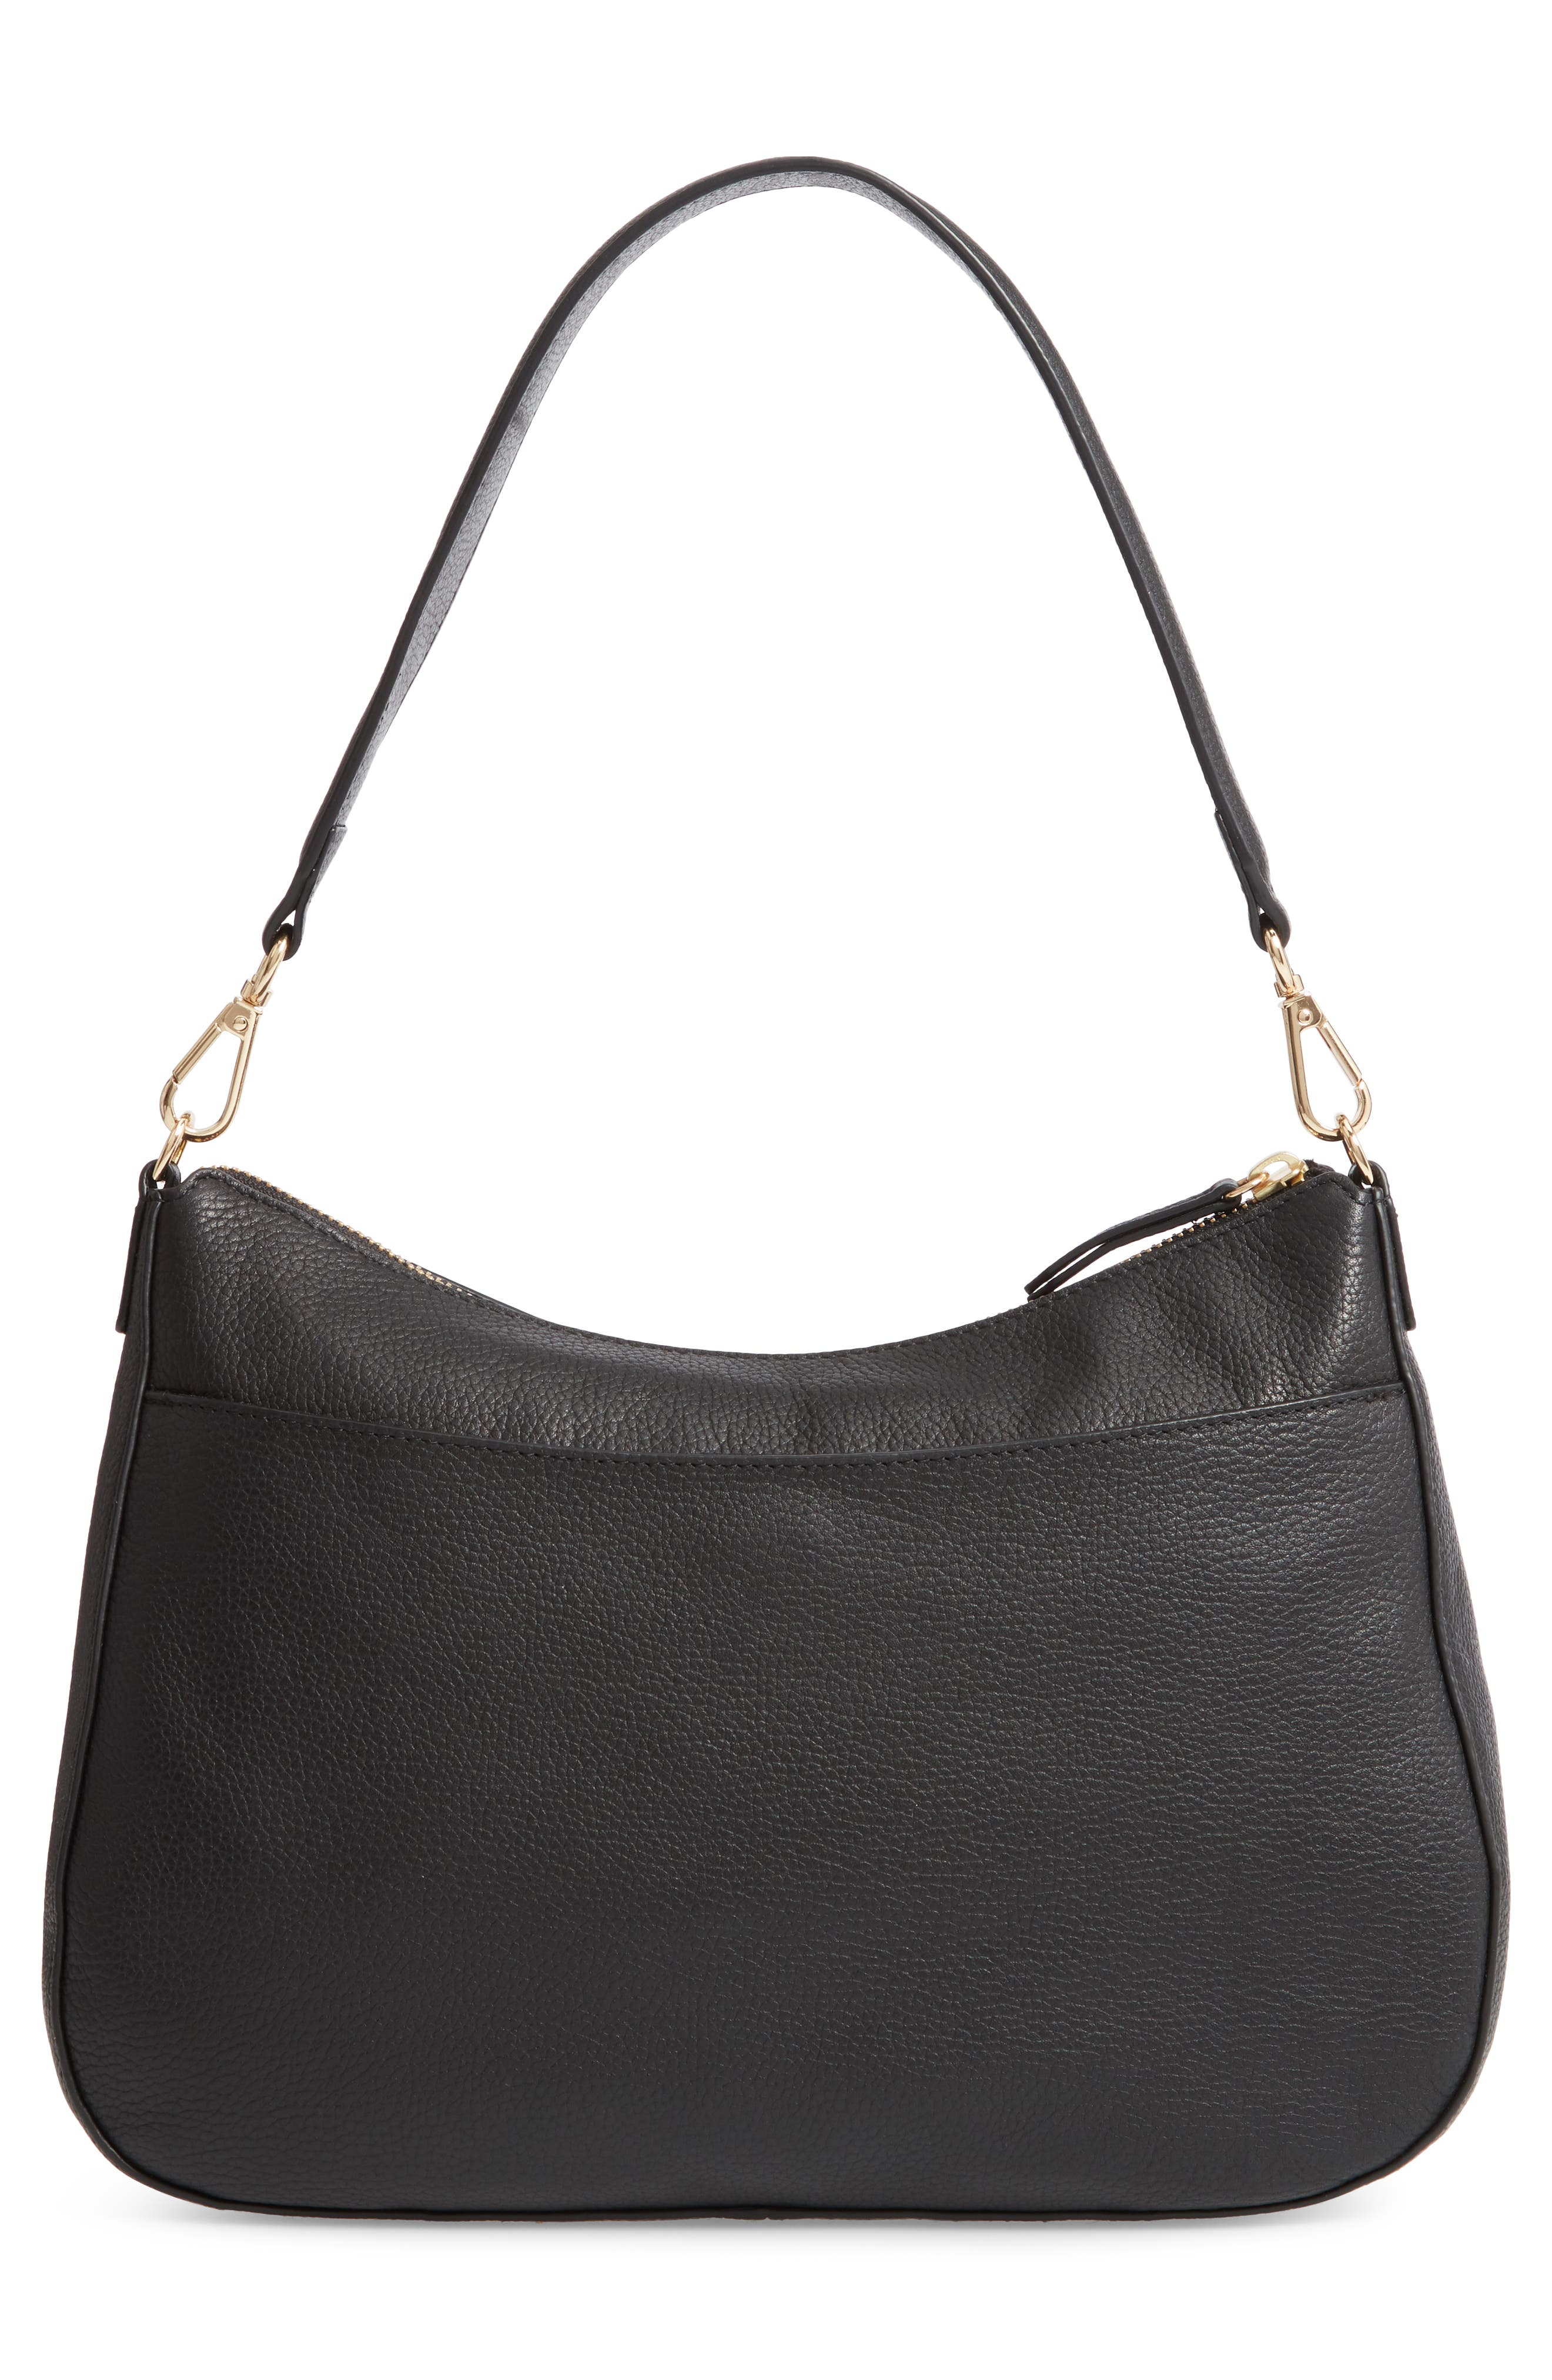 NORDSTROM, Finn Convertible Leather Hobo, Alternate thumbnail 5, color, BLACK